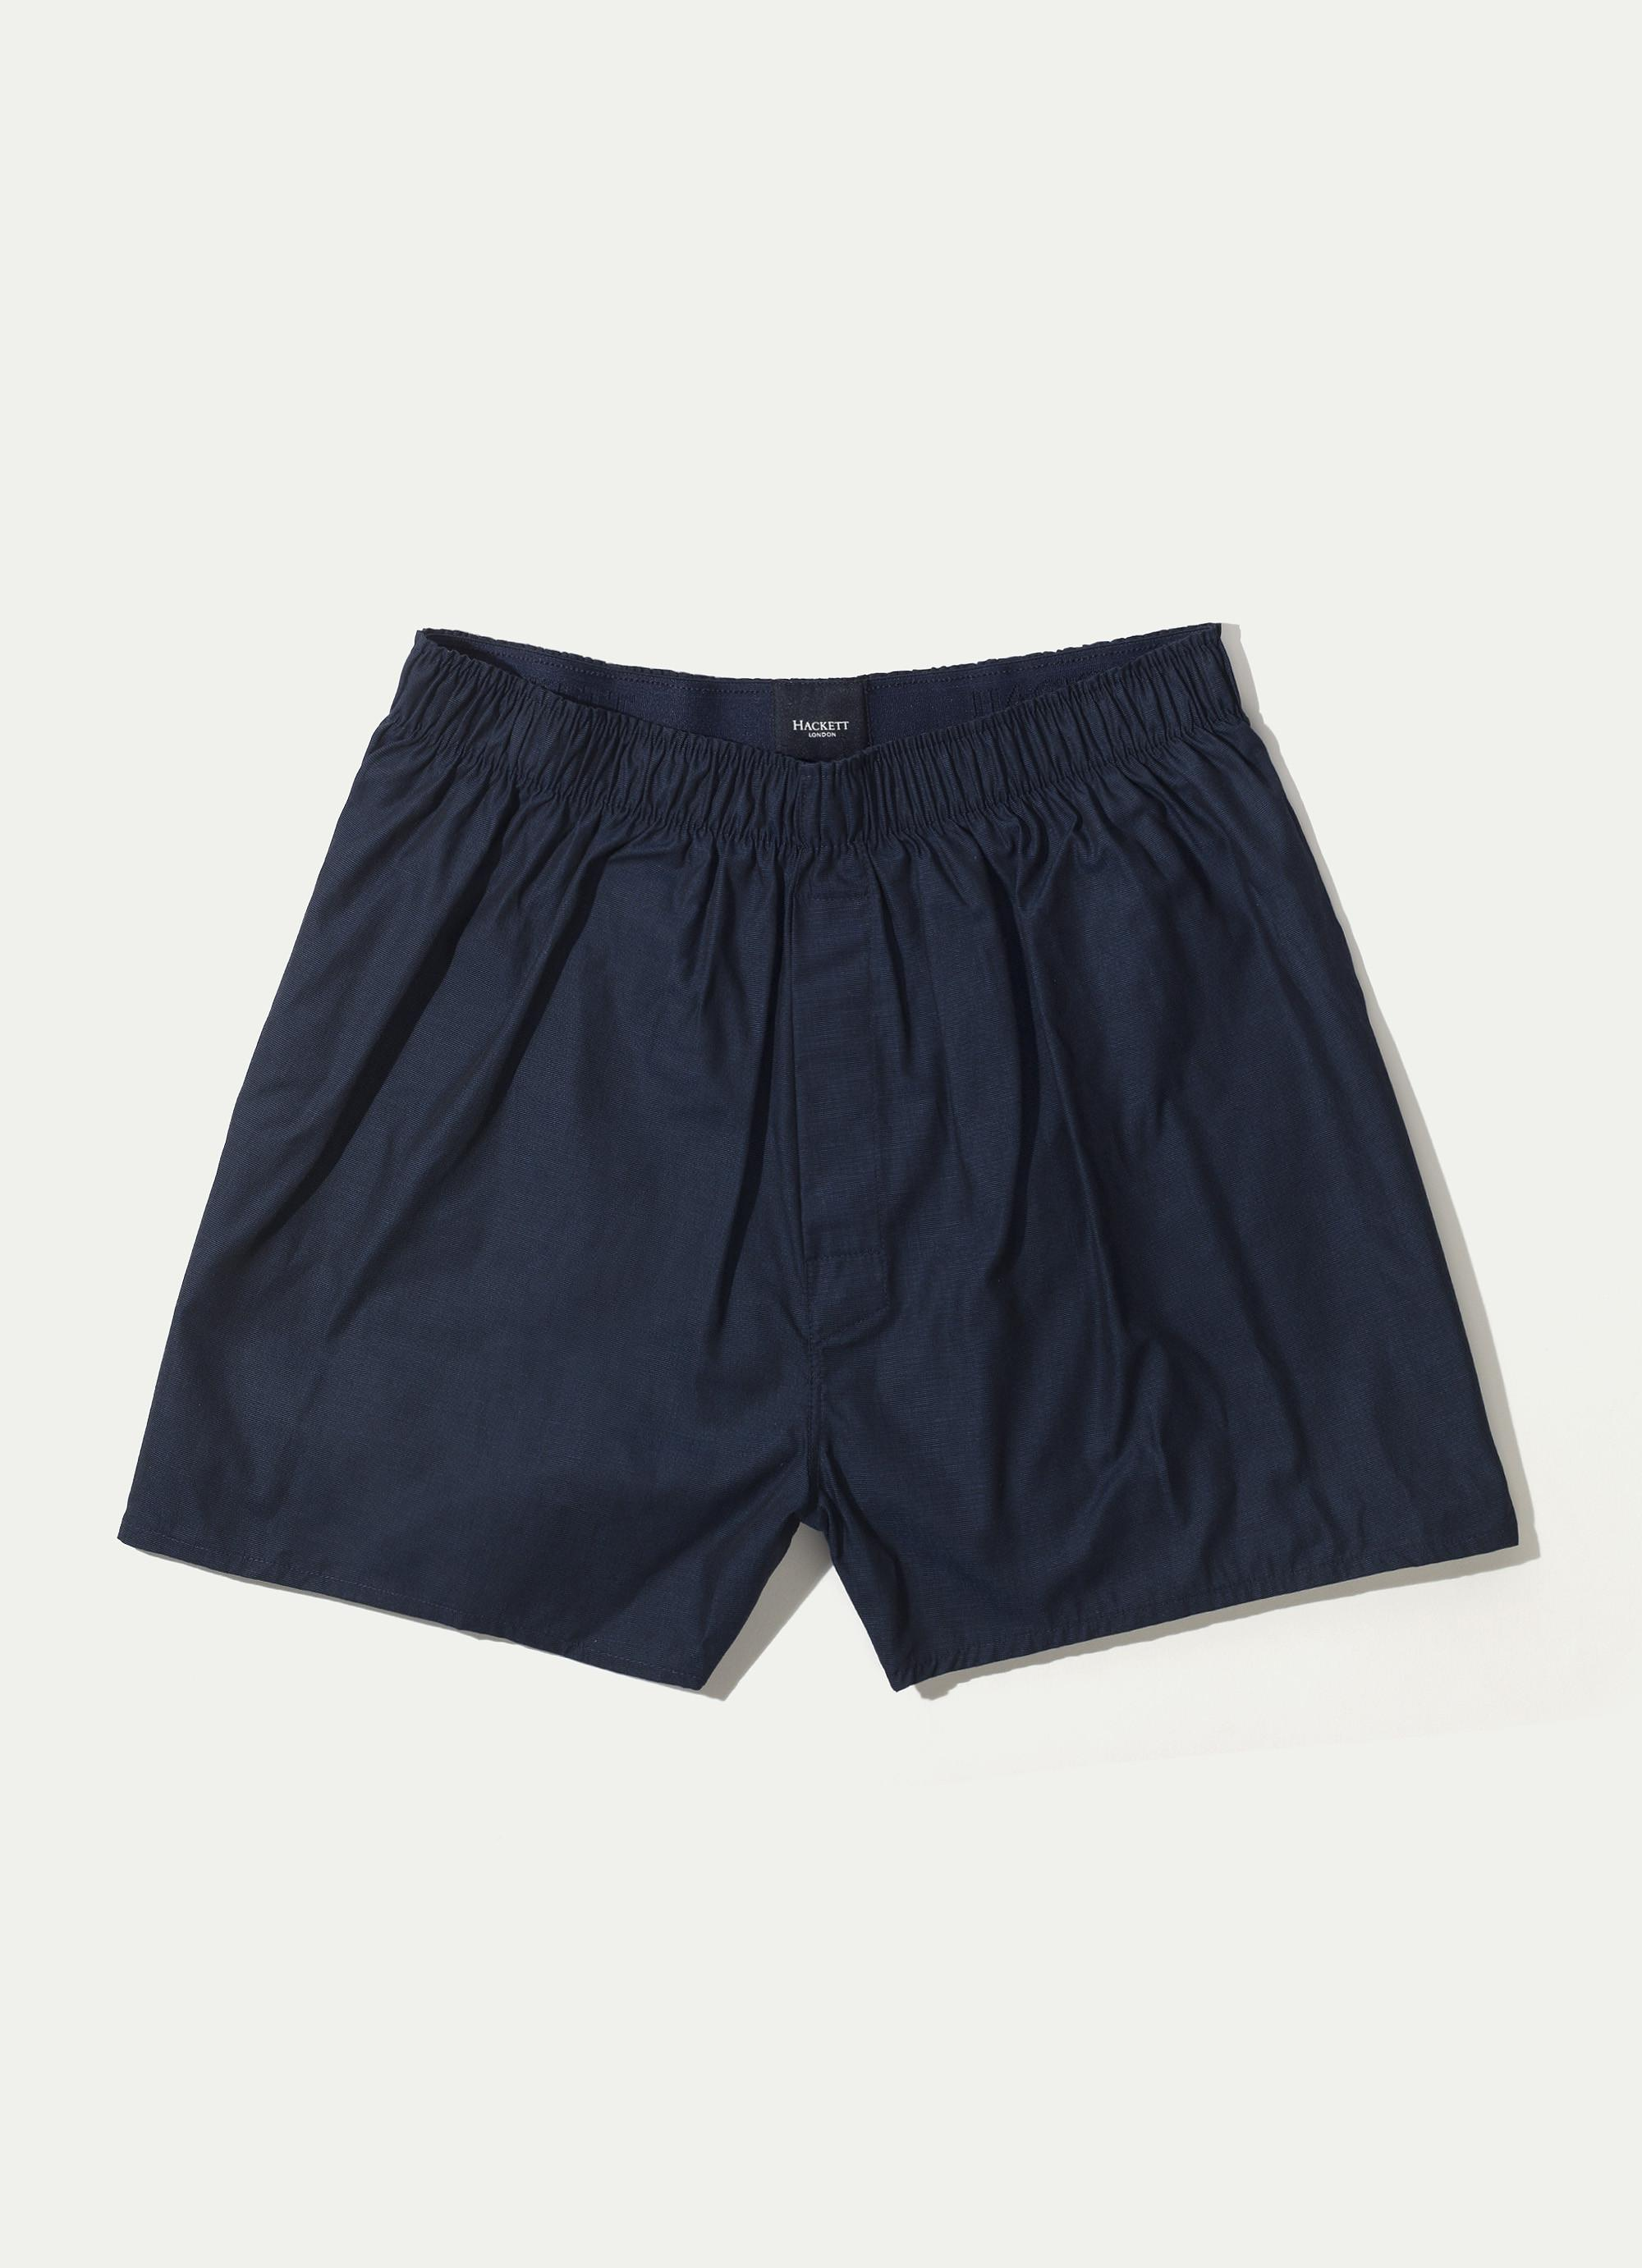 Mens Classic Solid Boxer Shorts Hackett Cheap Classic Inexpensive Online 2018 New Online With Paypal Online Cheap Sale Visa Payment 6GD7J29jY